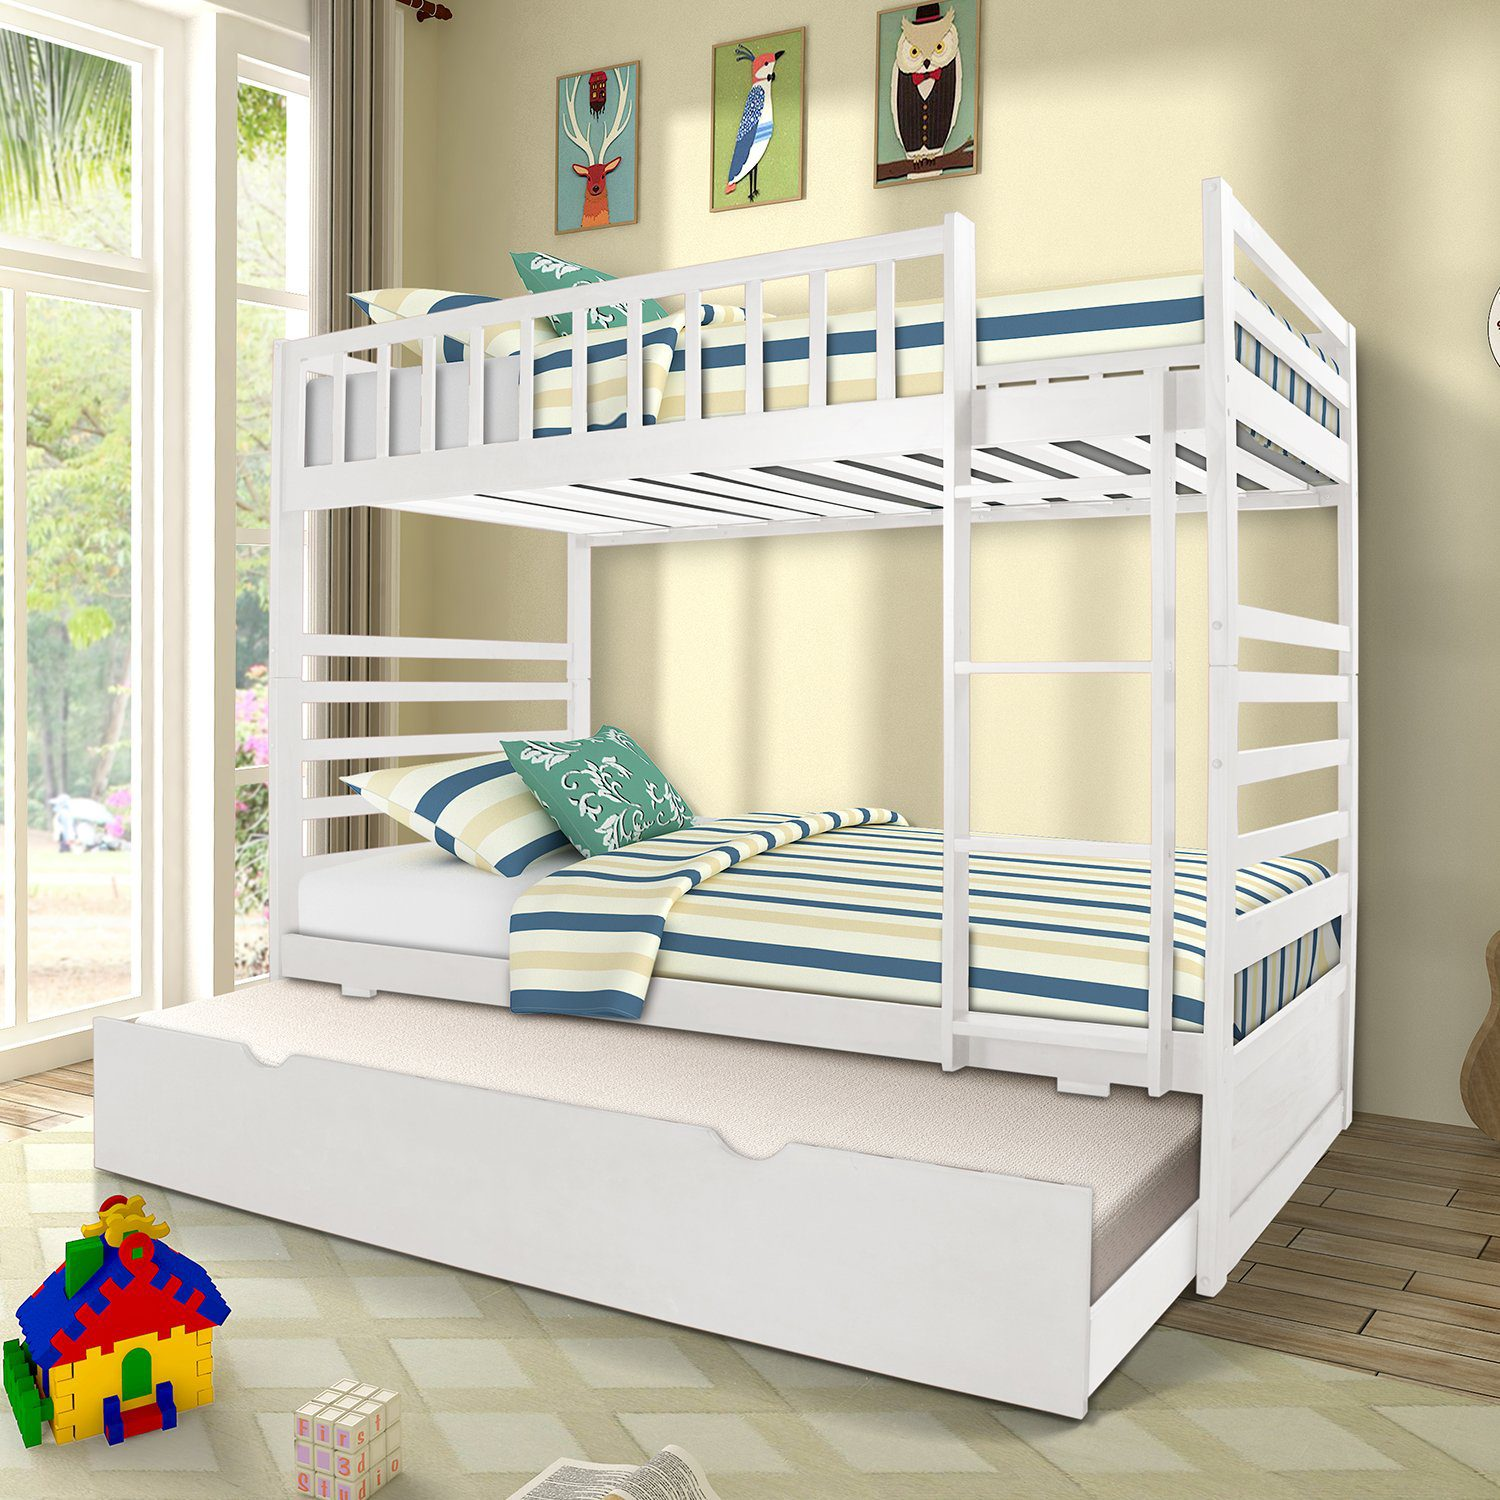 Twin Bunk Beds for Kids Twin Over Full, Twin Bunk Beds